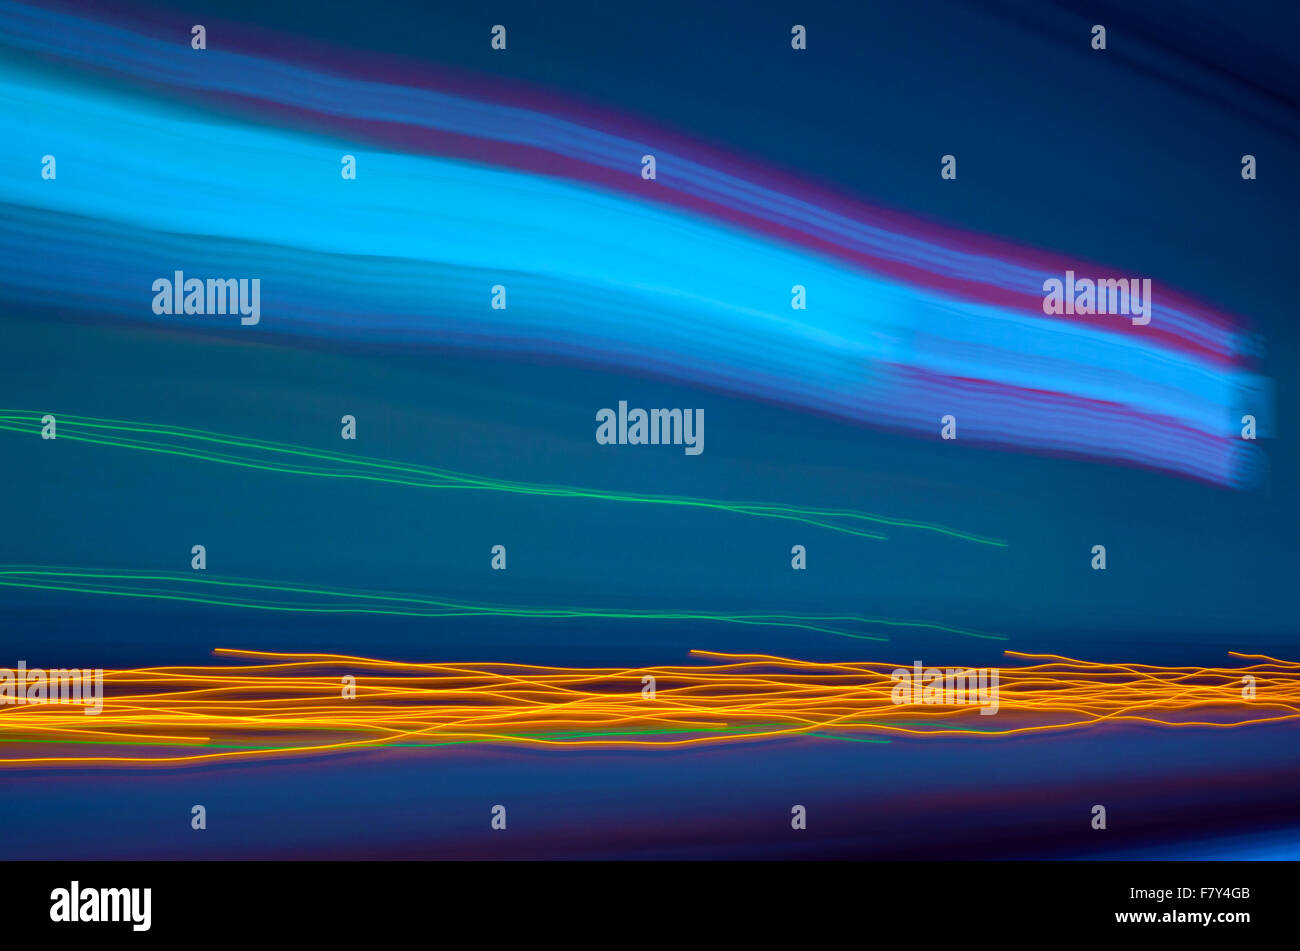 Blue abstract  background. Lines and curves concept of speed. Photo result Stock Photo